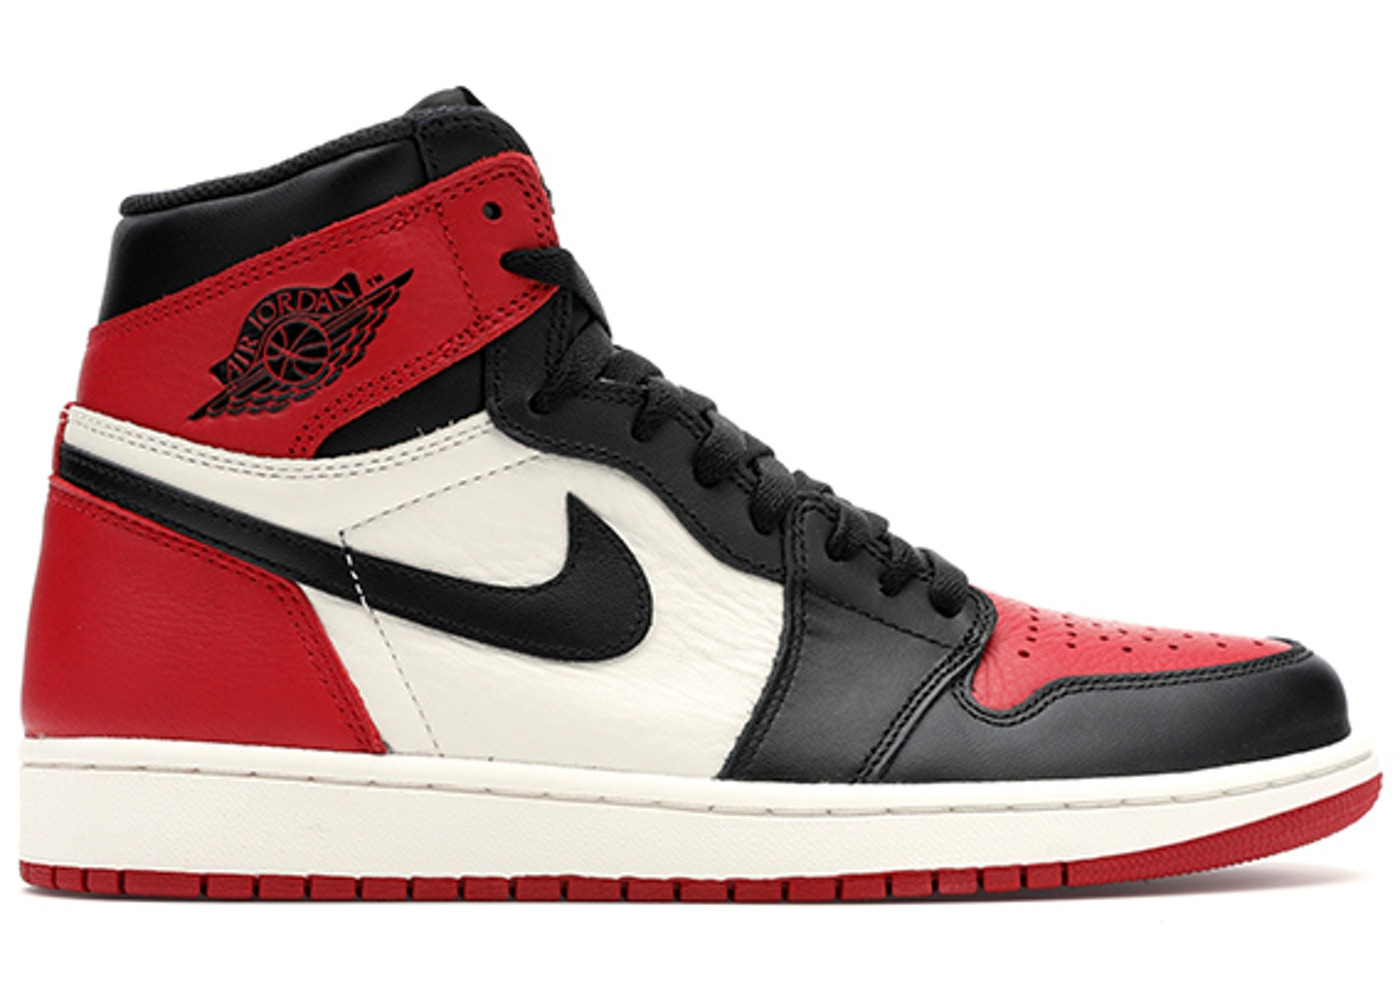 f3d0802f5e229 Jordan 1 Retro High Bred Toe - 555088-610